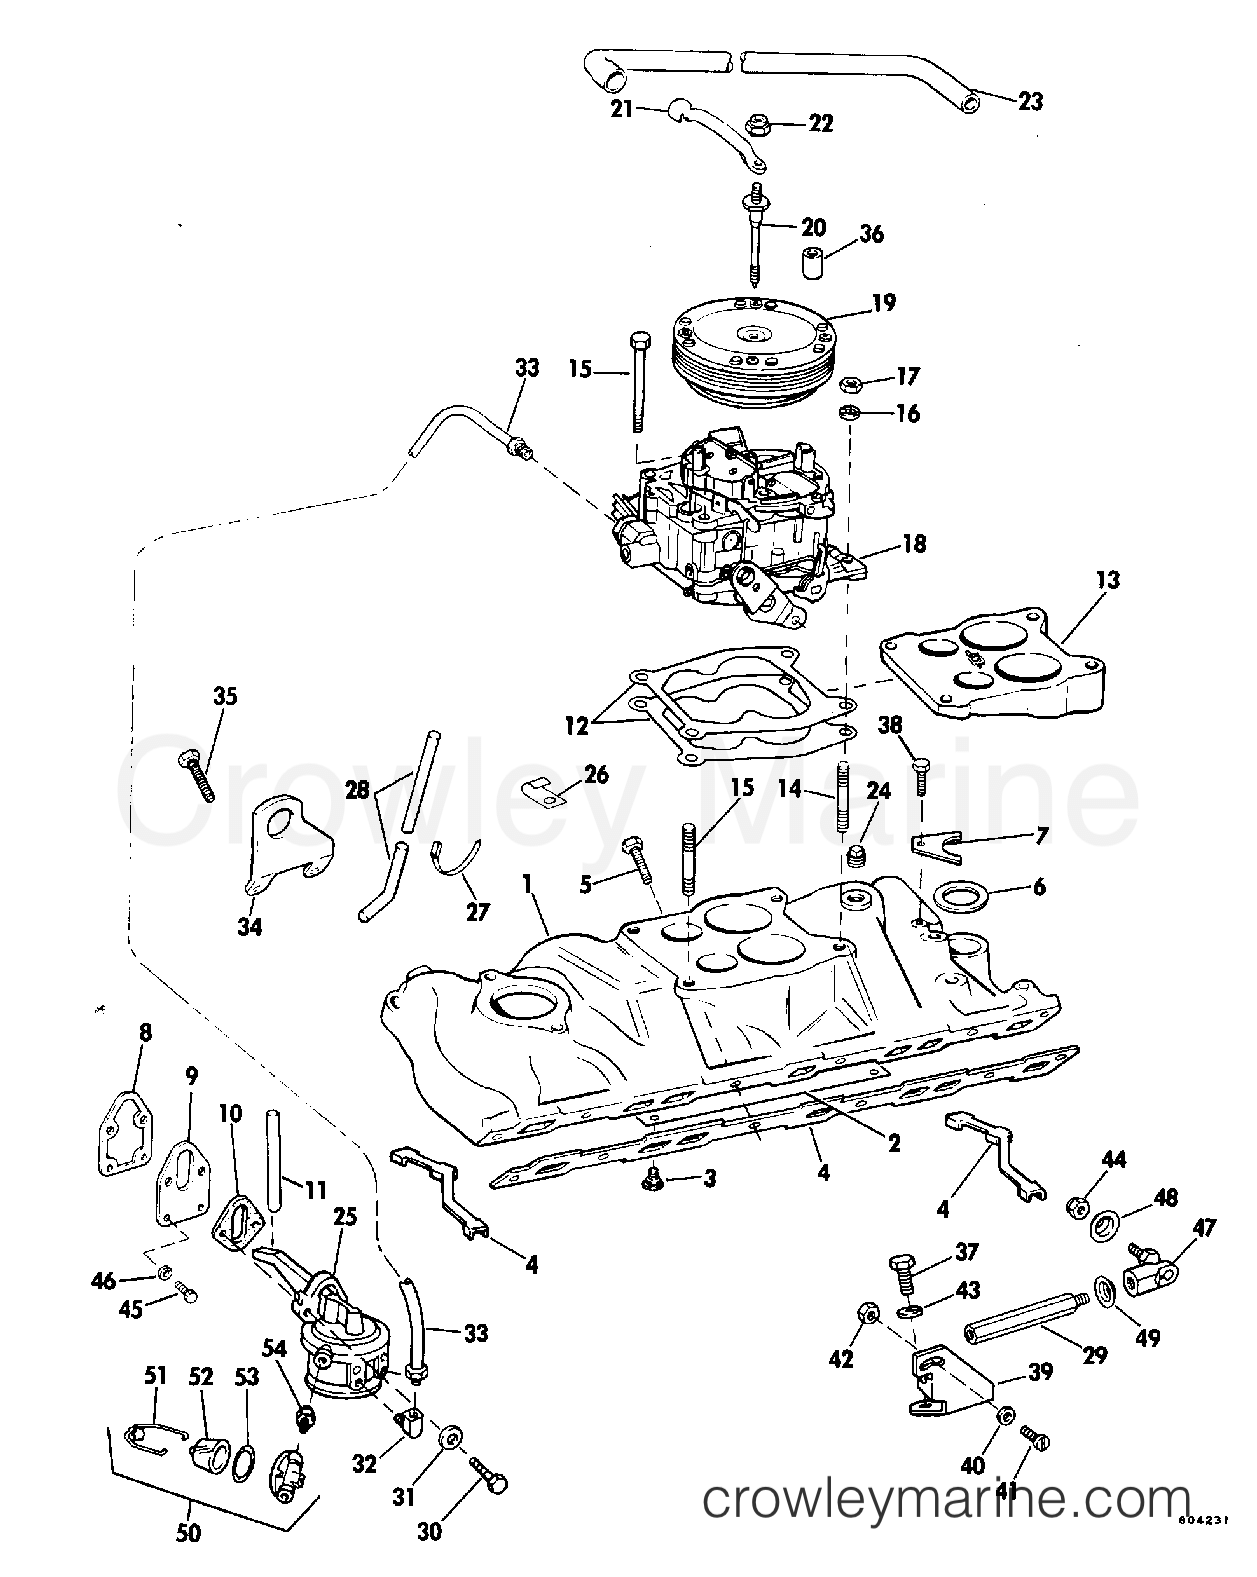 Intake Manifold Fuel Pump And Carburetor Lines